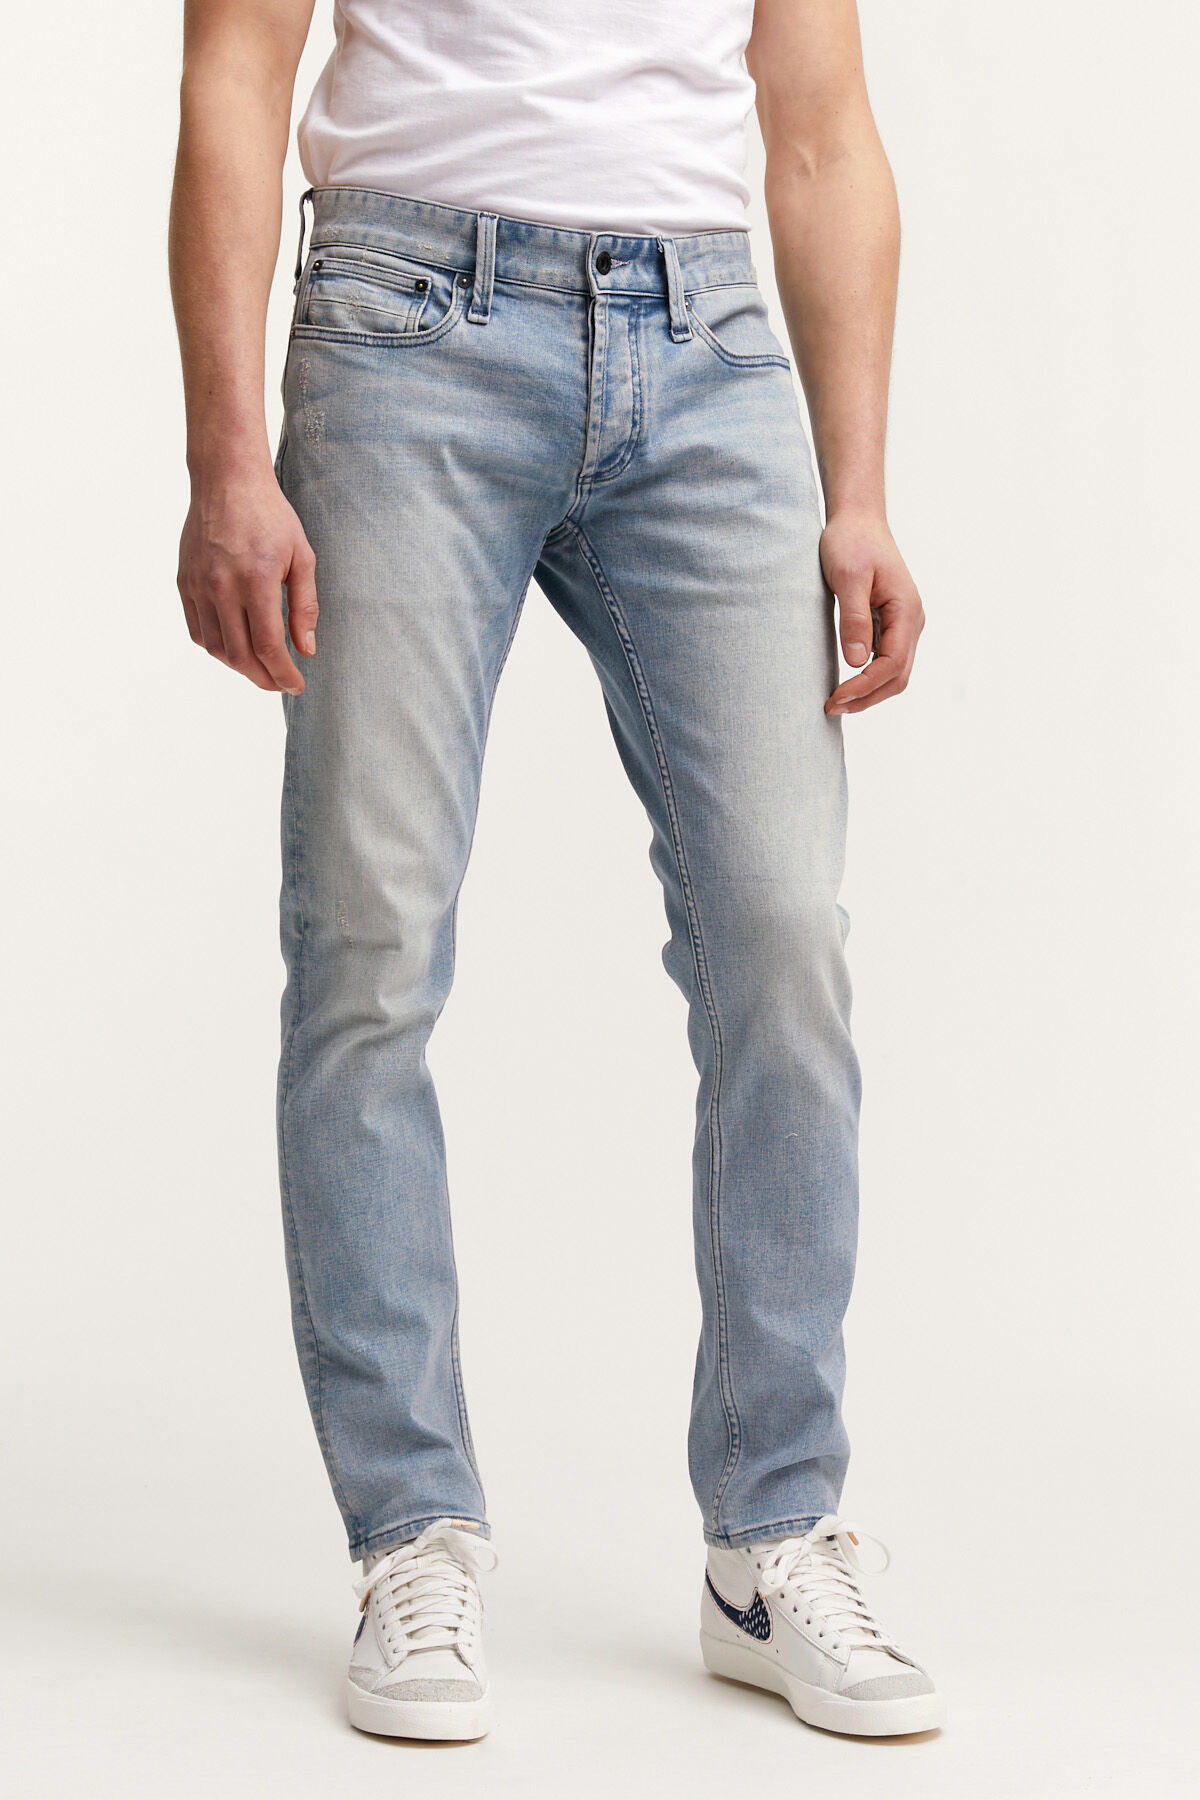 RAZOR CLASSIC INDIGO RIP & REPAIR DENIM - Slim Fit